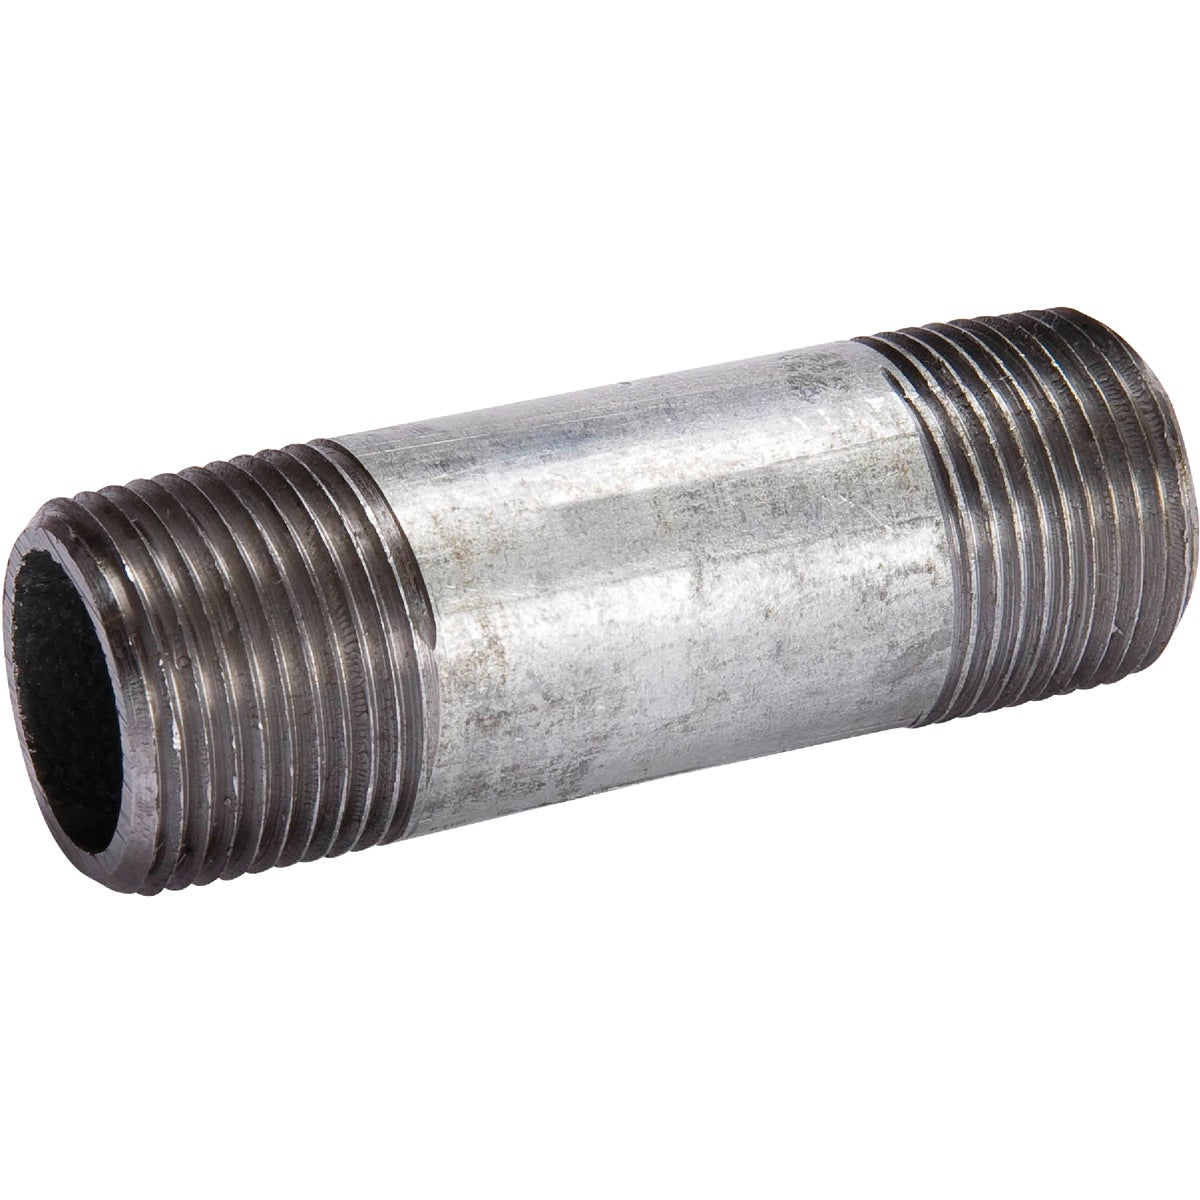 1/2X4 GALV NIPPLE - 10406 by Southland Pipe Nippl